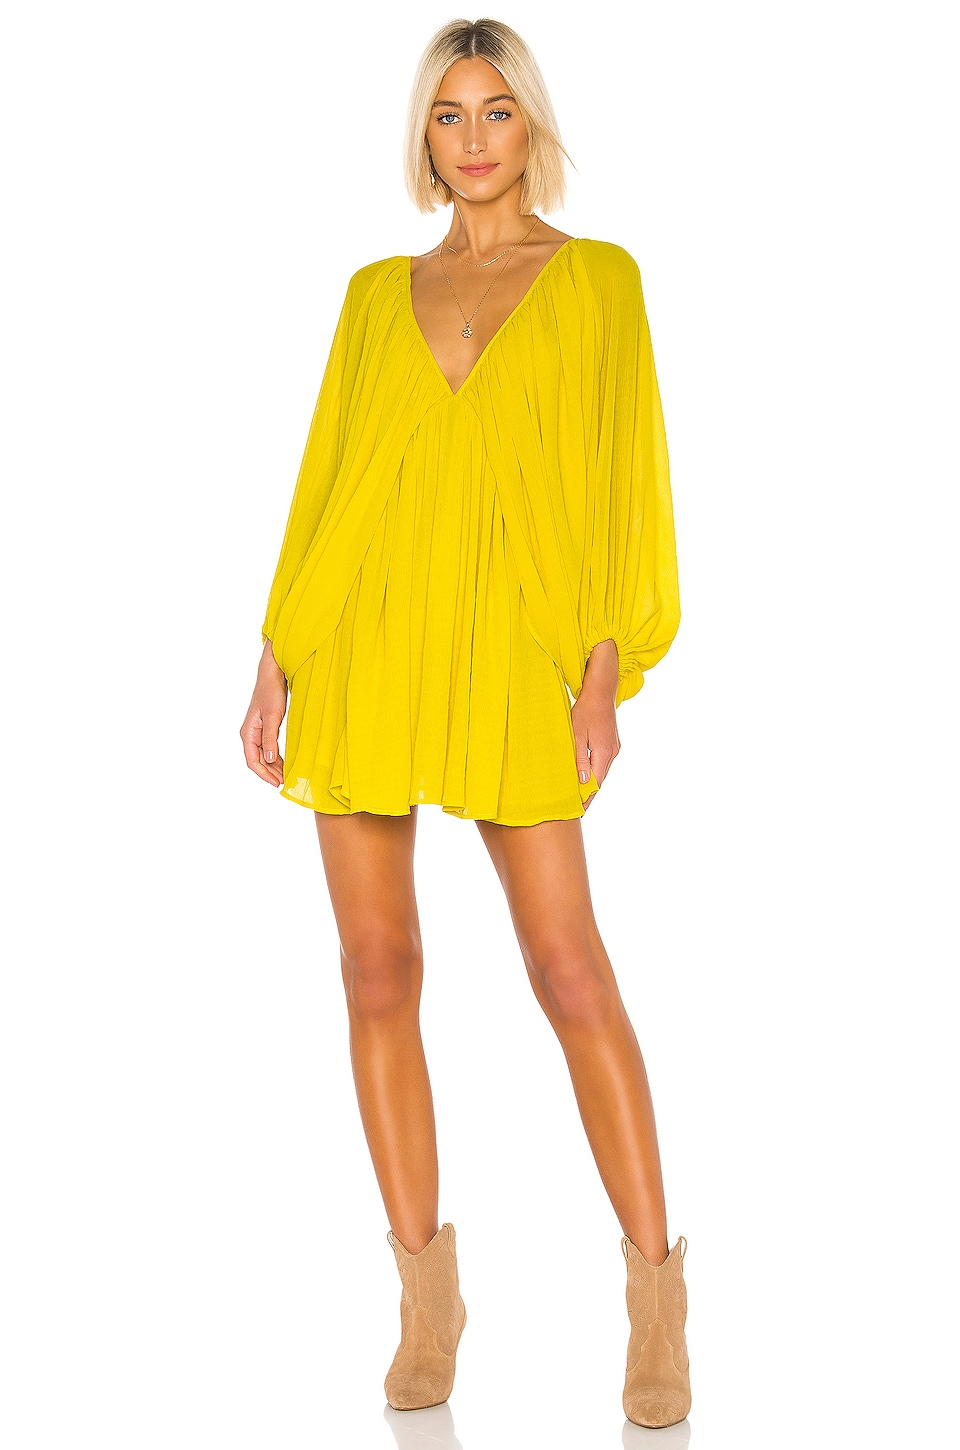 Tularosa Nola Dress in Vibrant Yellow